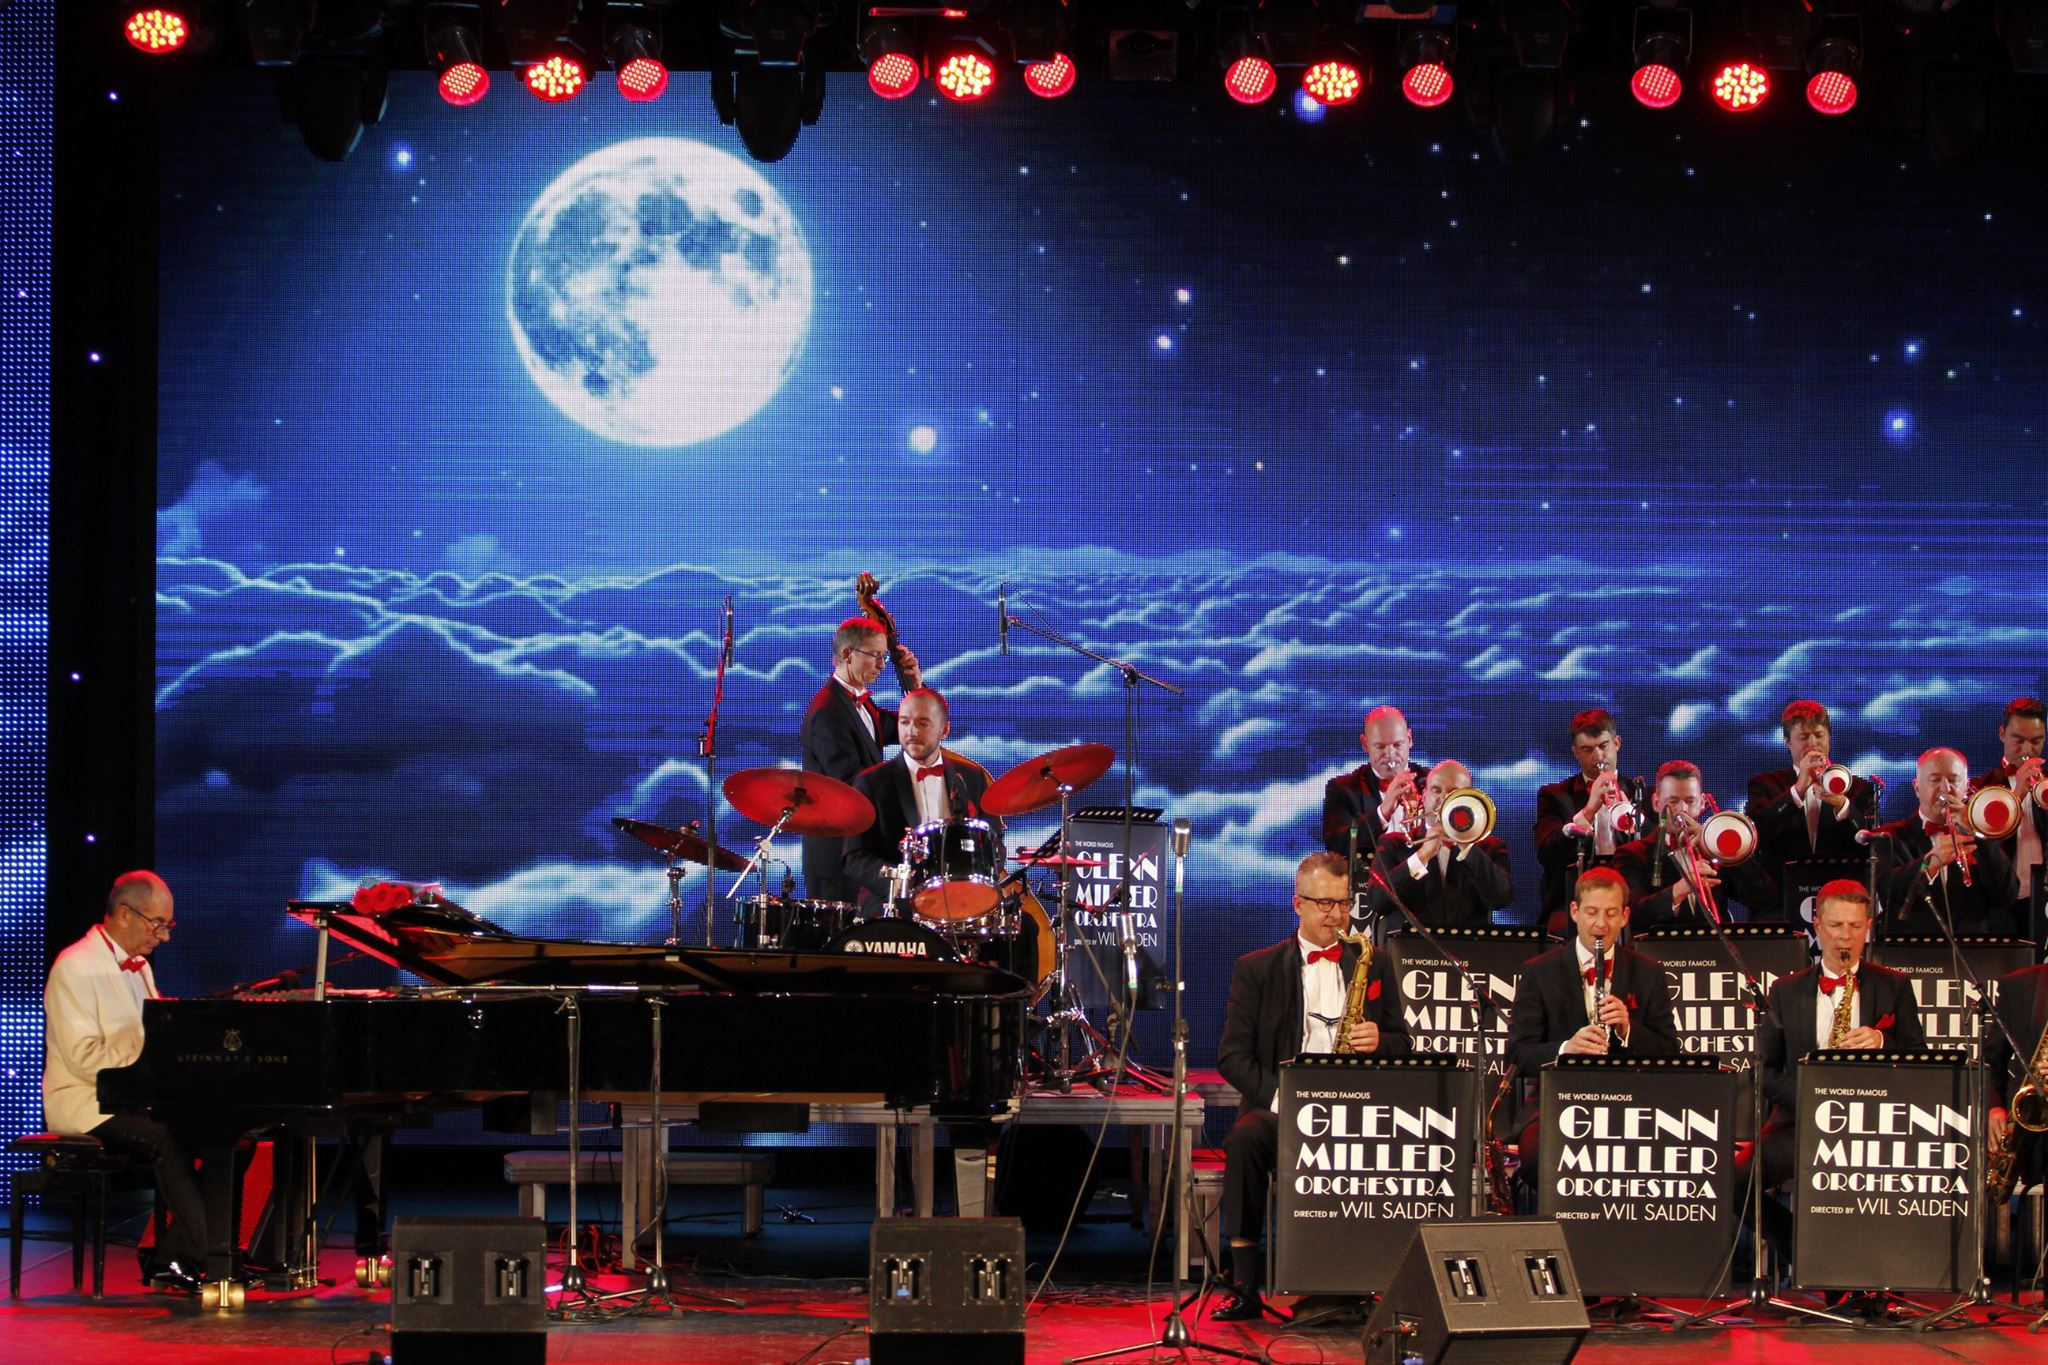 Glenn Miller Orchestra in Israel & Russia